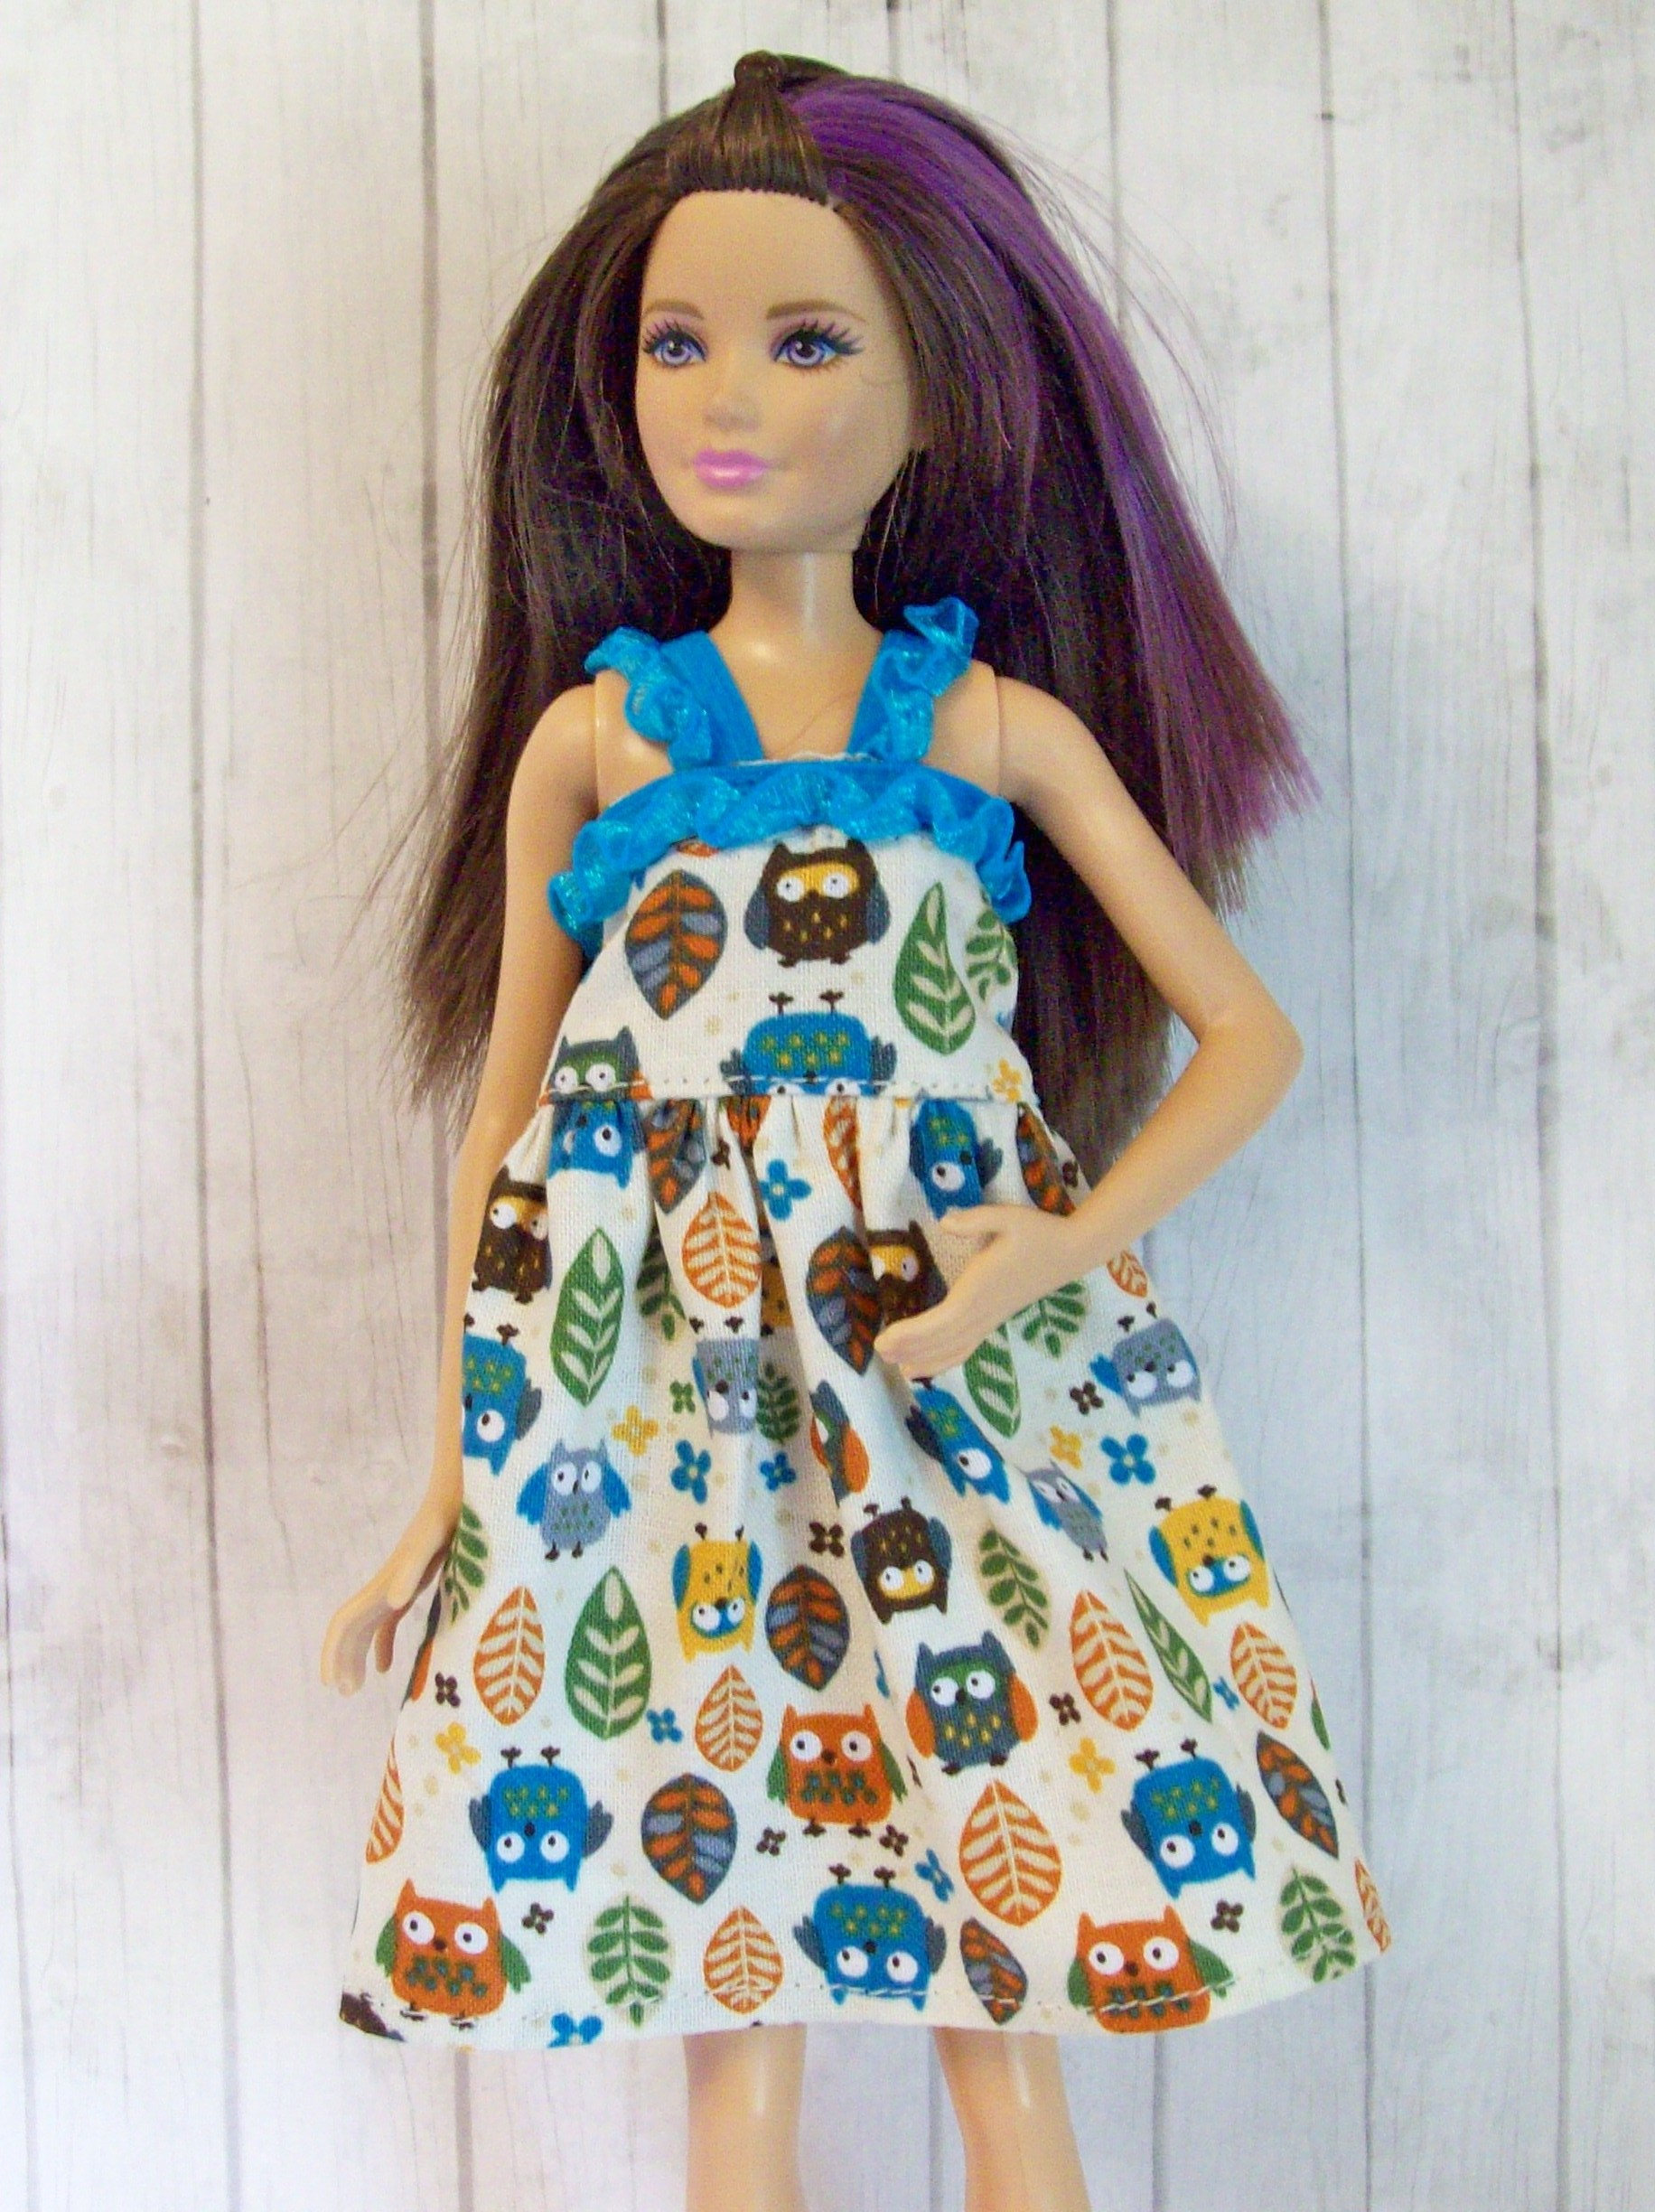 Fashion handmade doll photo